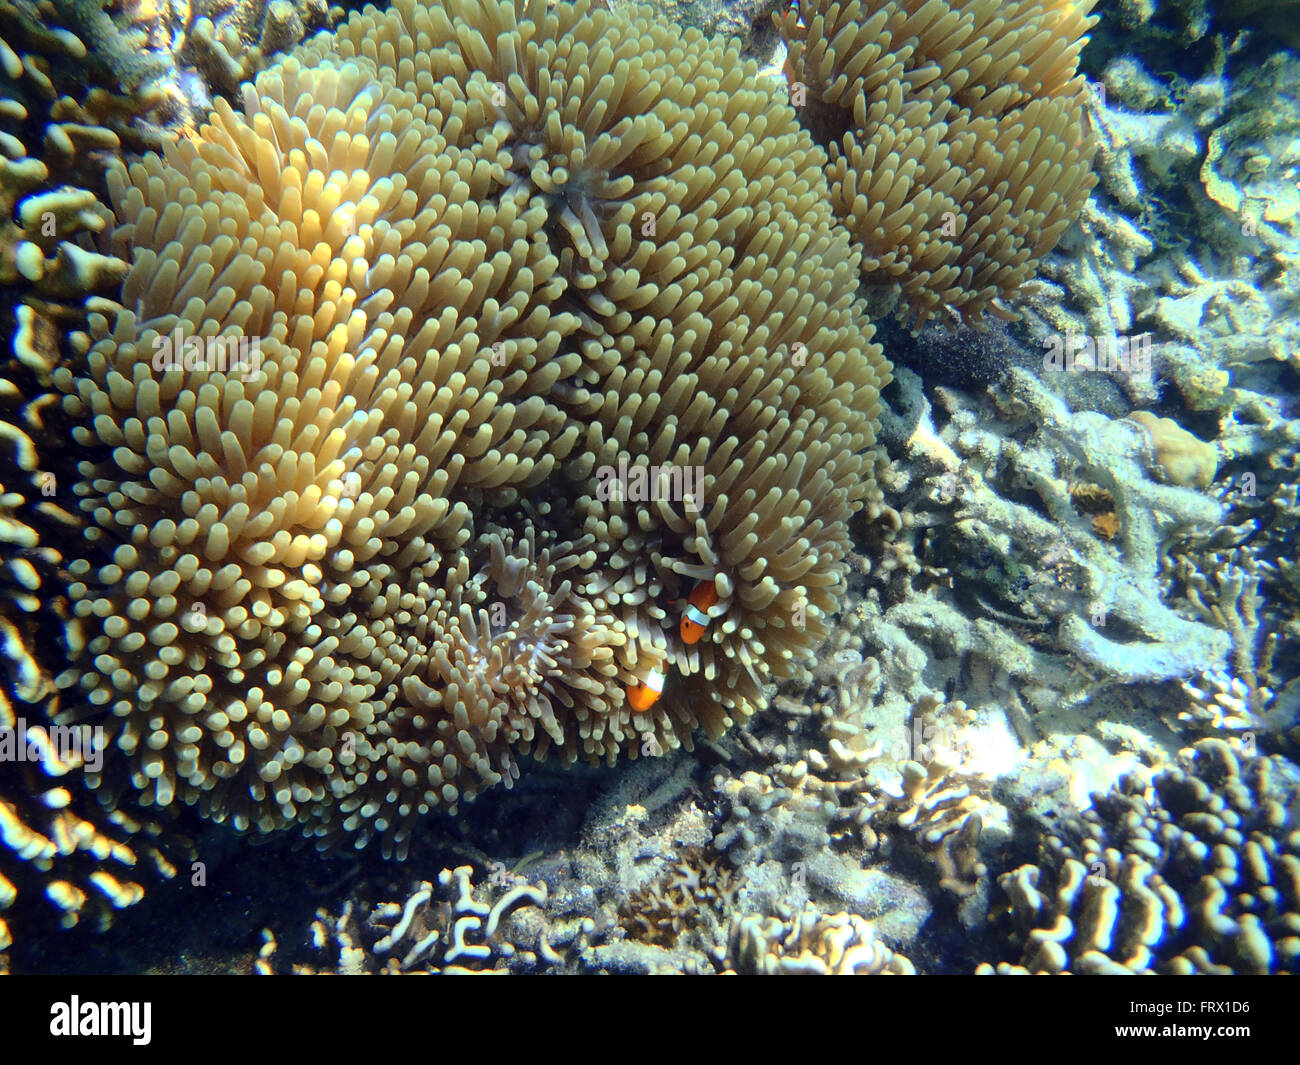 colorful coral reef at the bottom of tropical sea, underwater - Stock Image